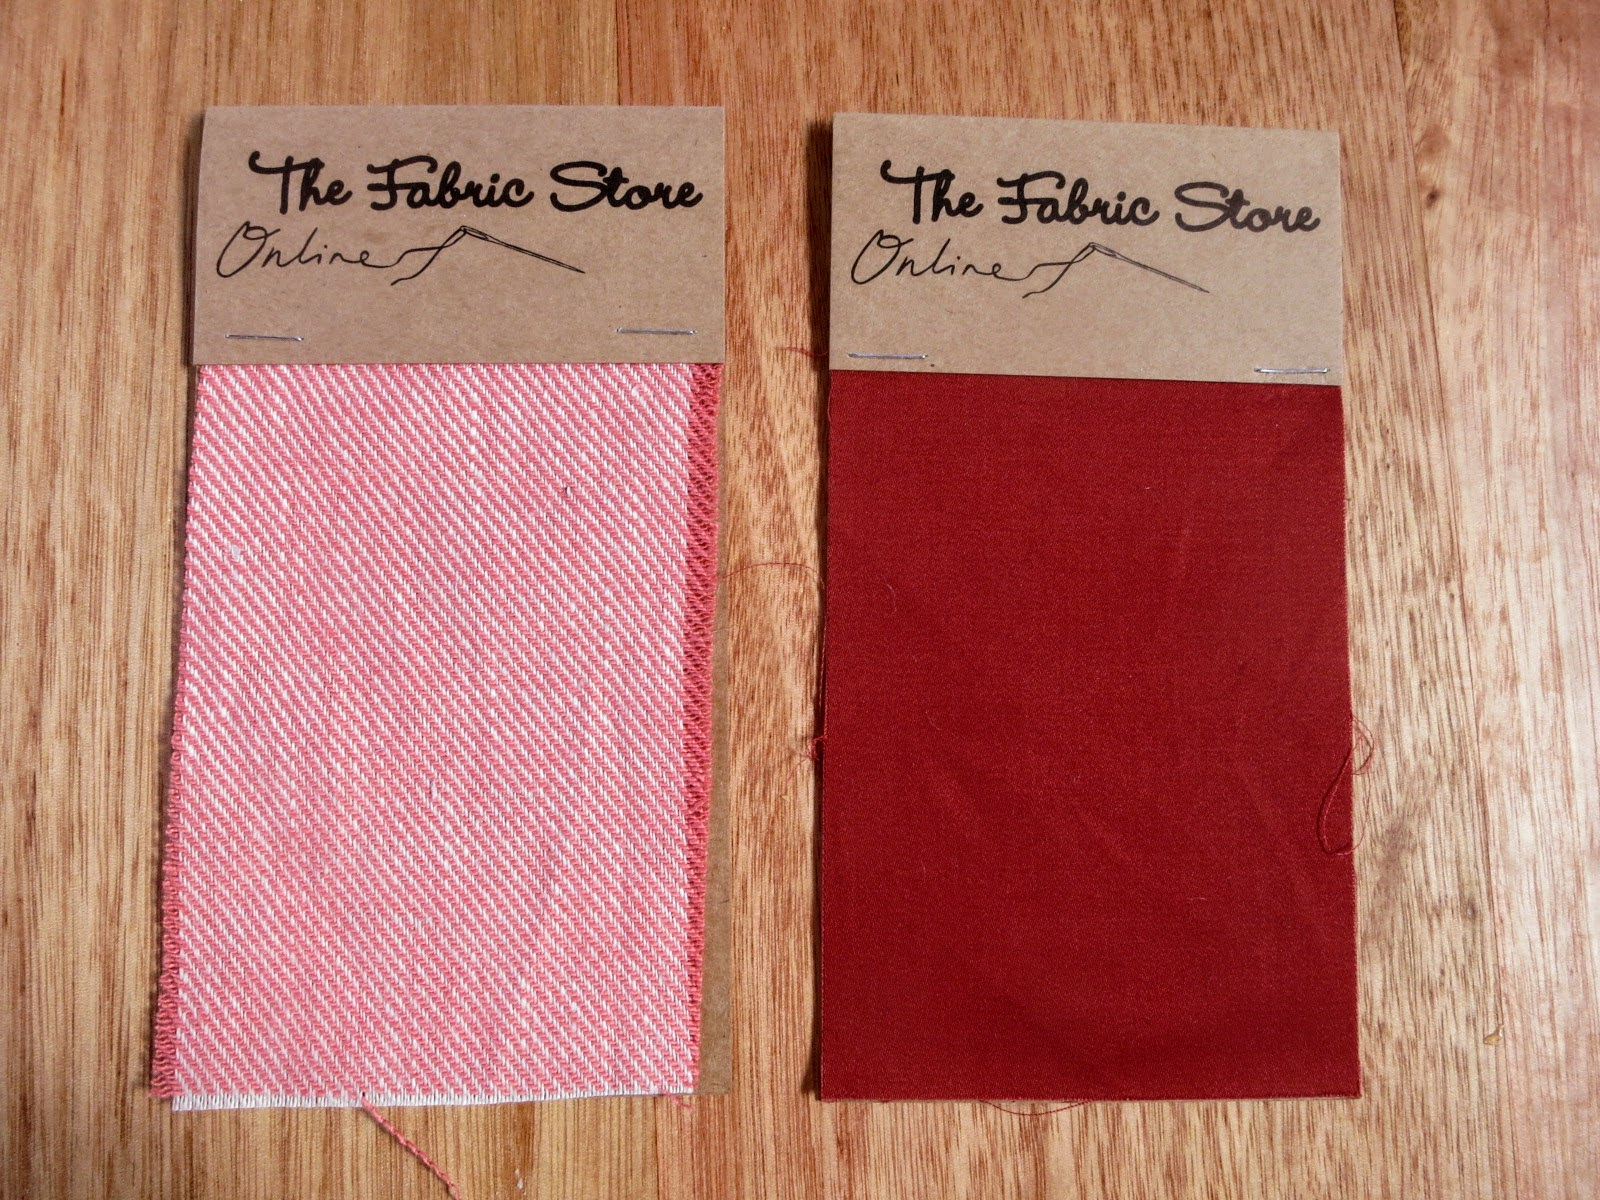 Twill samples from The Fabric Store